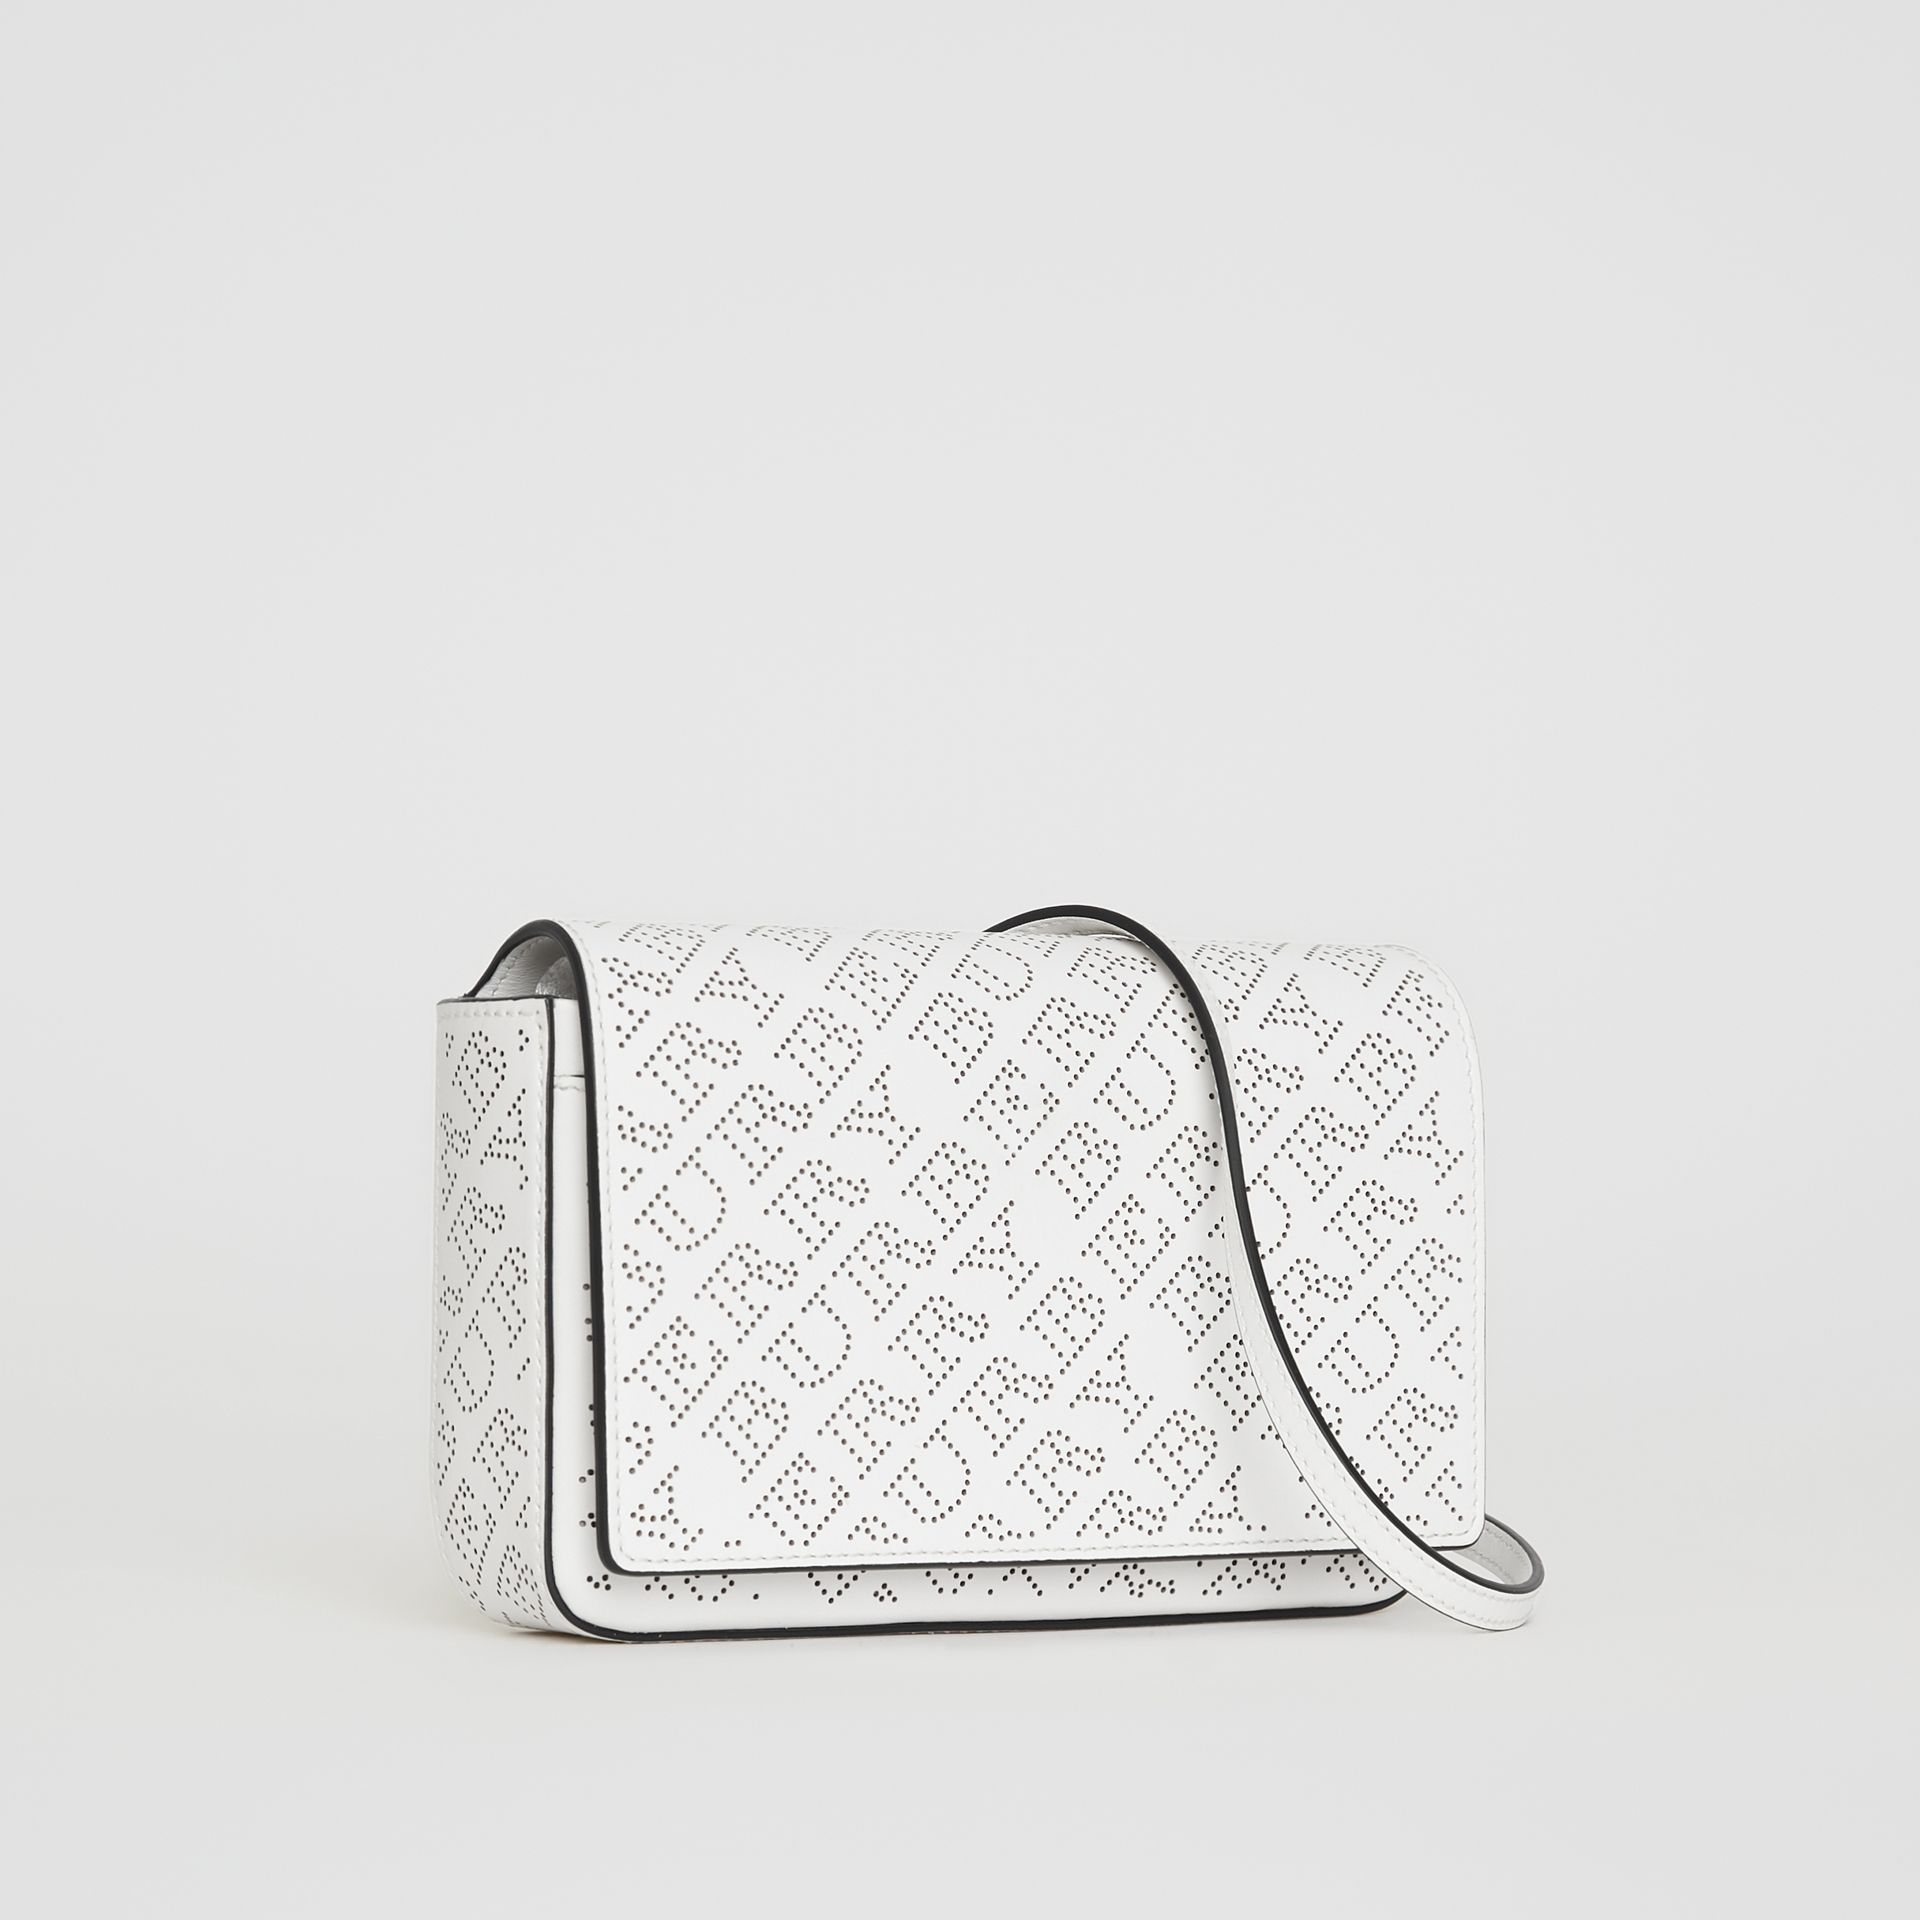 Perforated Logo Leather Wallet with Detachable Strap in White - Women | Burberry Australia - gallery image 6